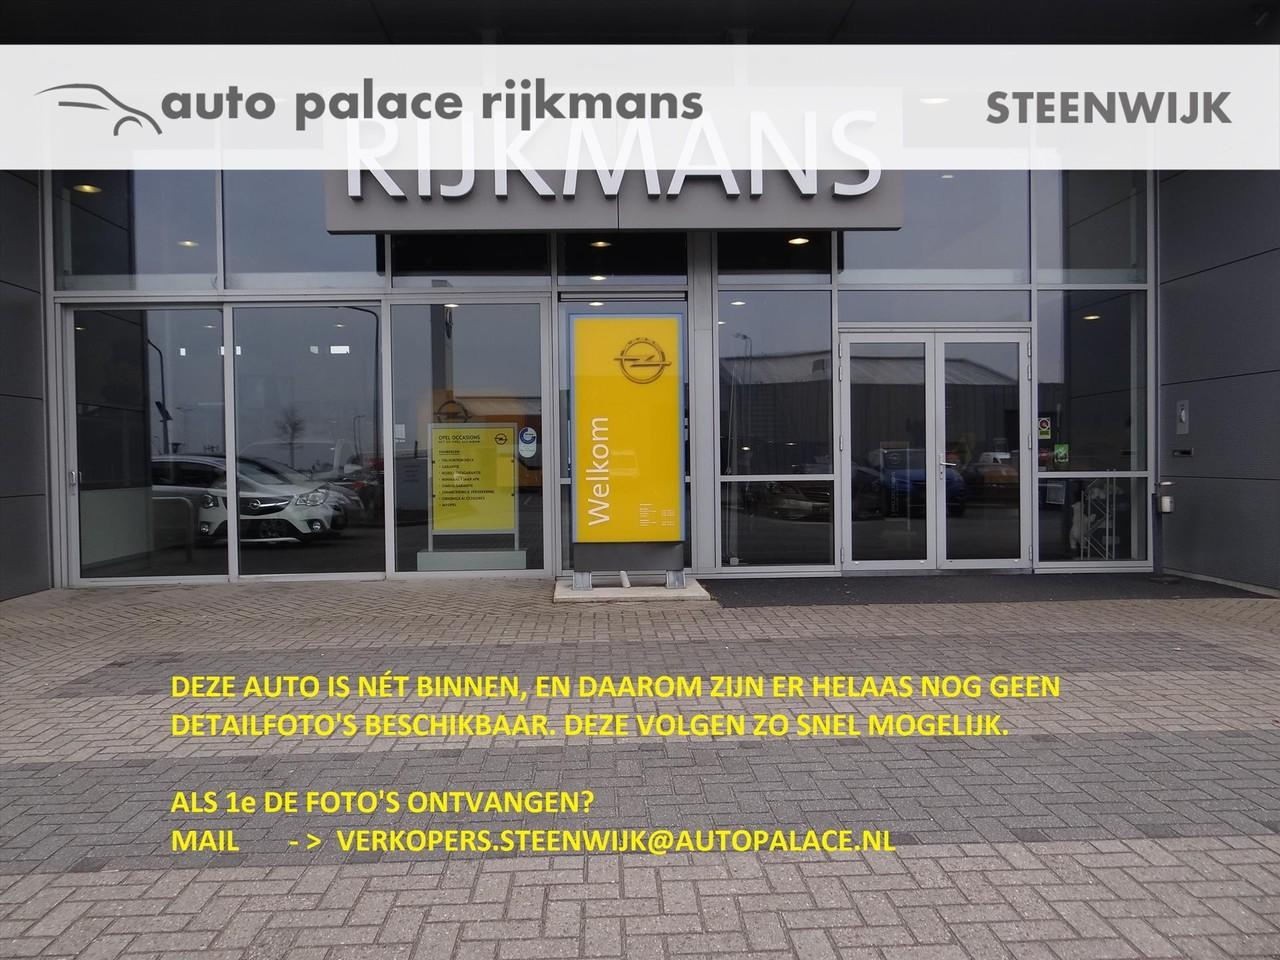 Opel Astra Online ed. 1.0t 105 pk - 5drs - airco - cruise - zuinig